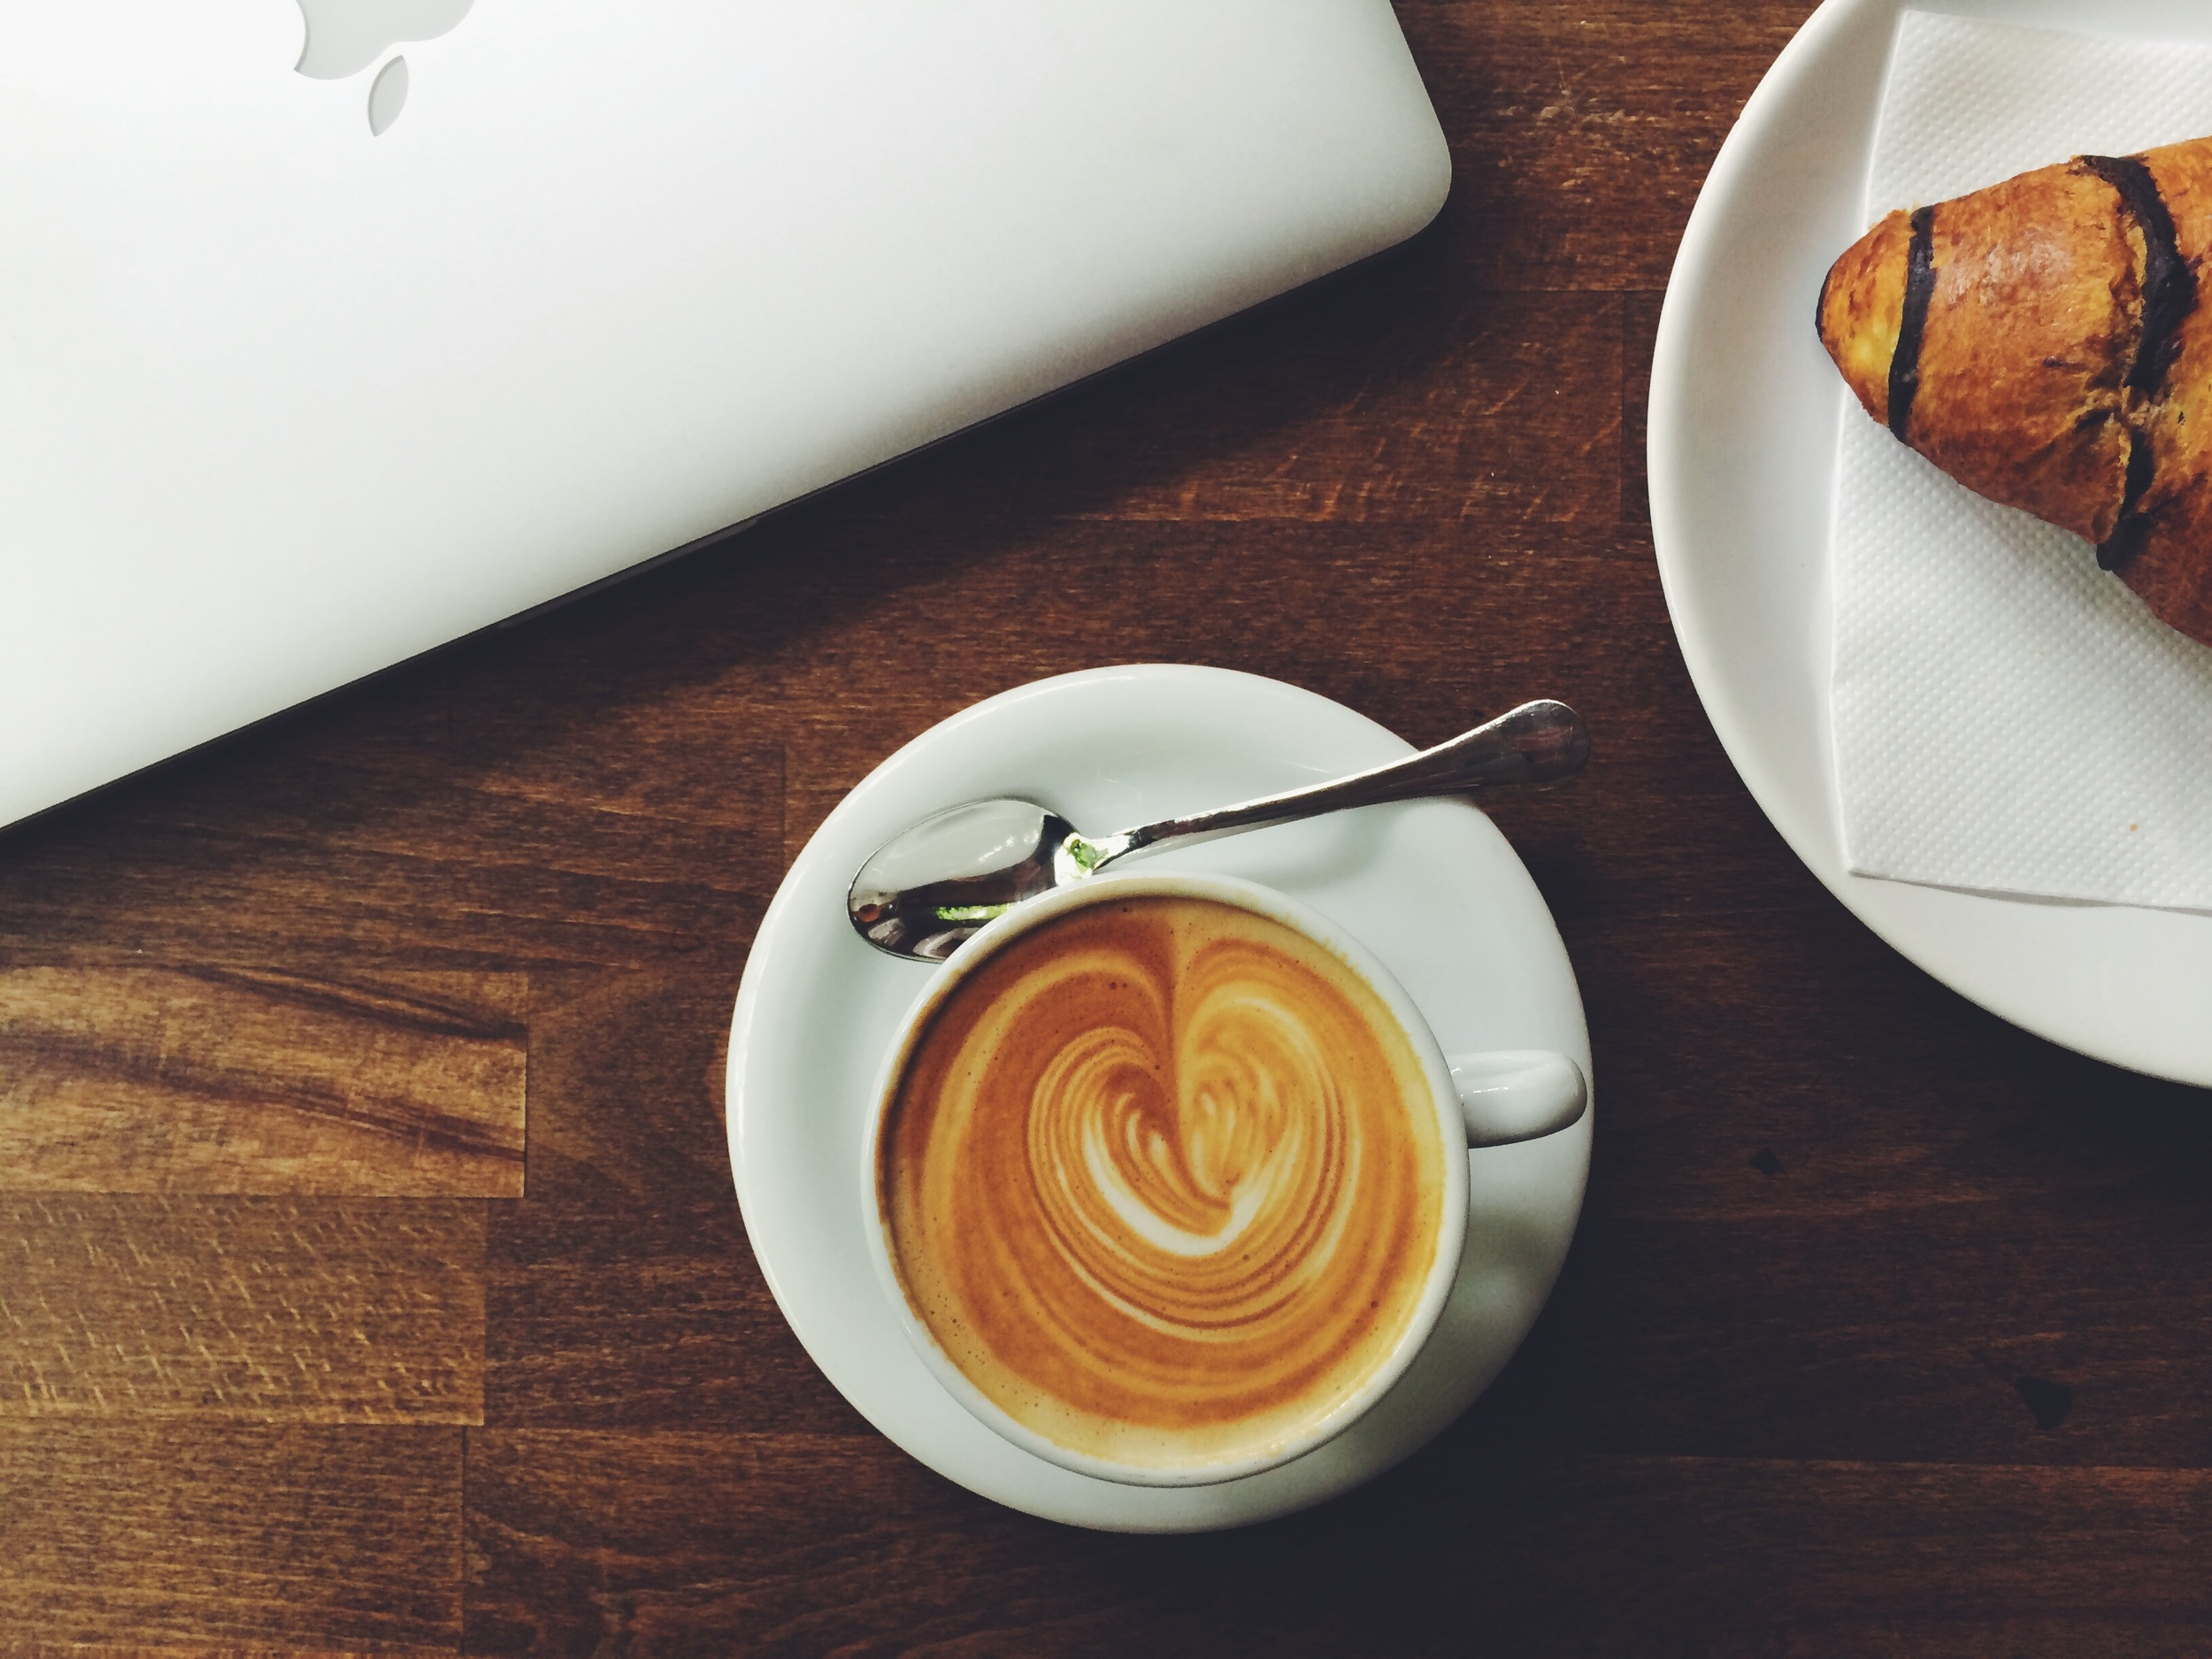 You'll be too busy asking questions to tuck into the croissants. (Image credit: Unsplash)